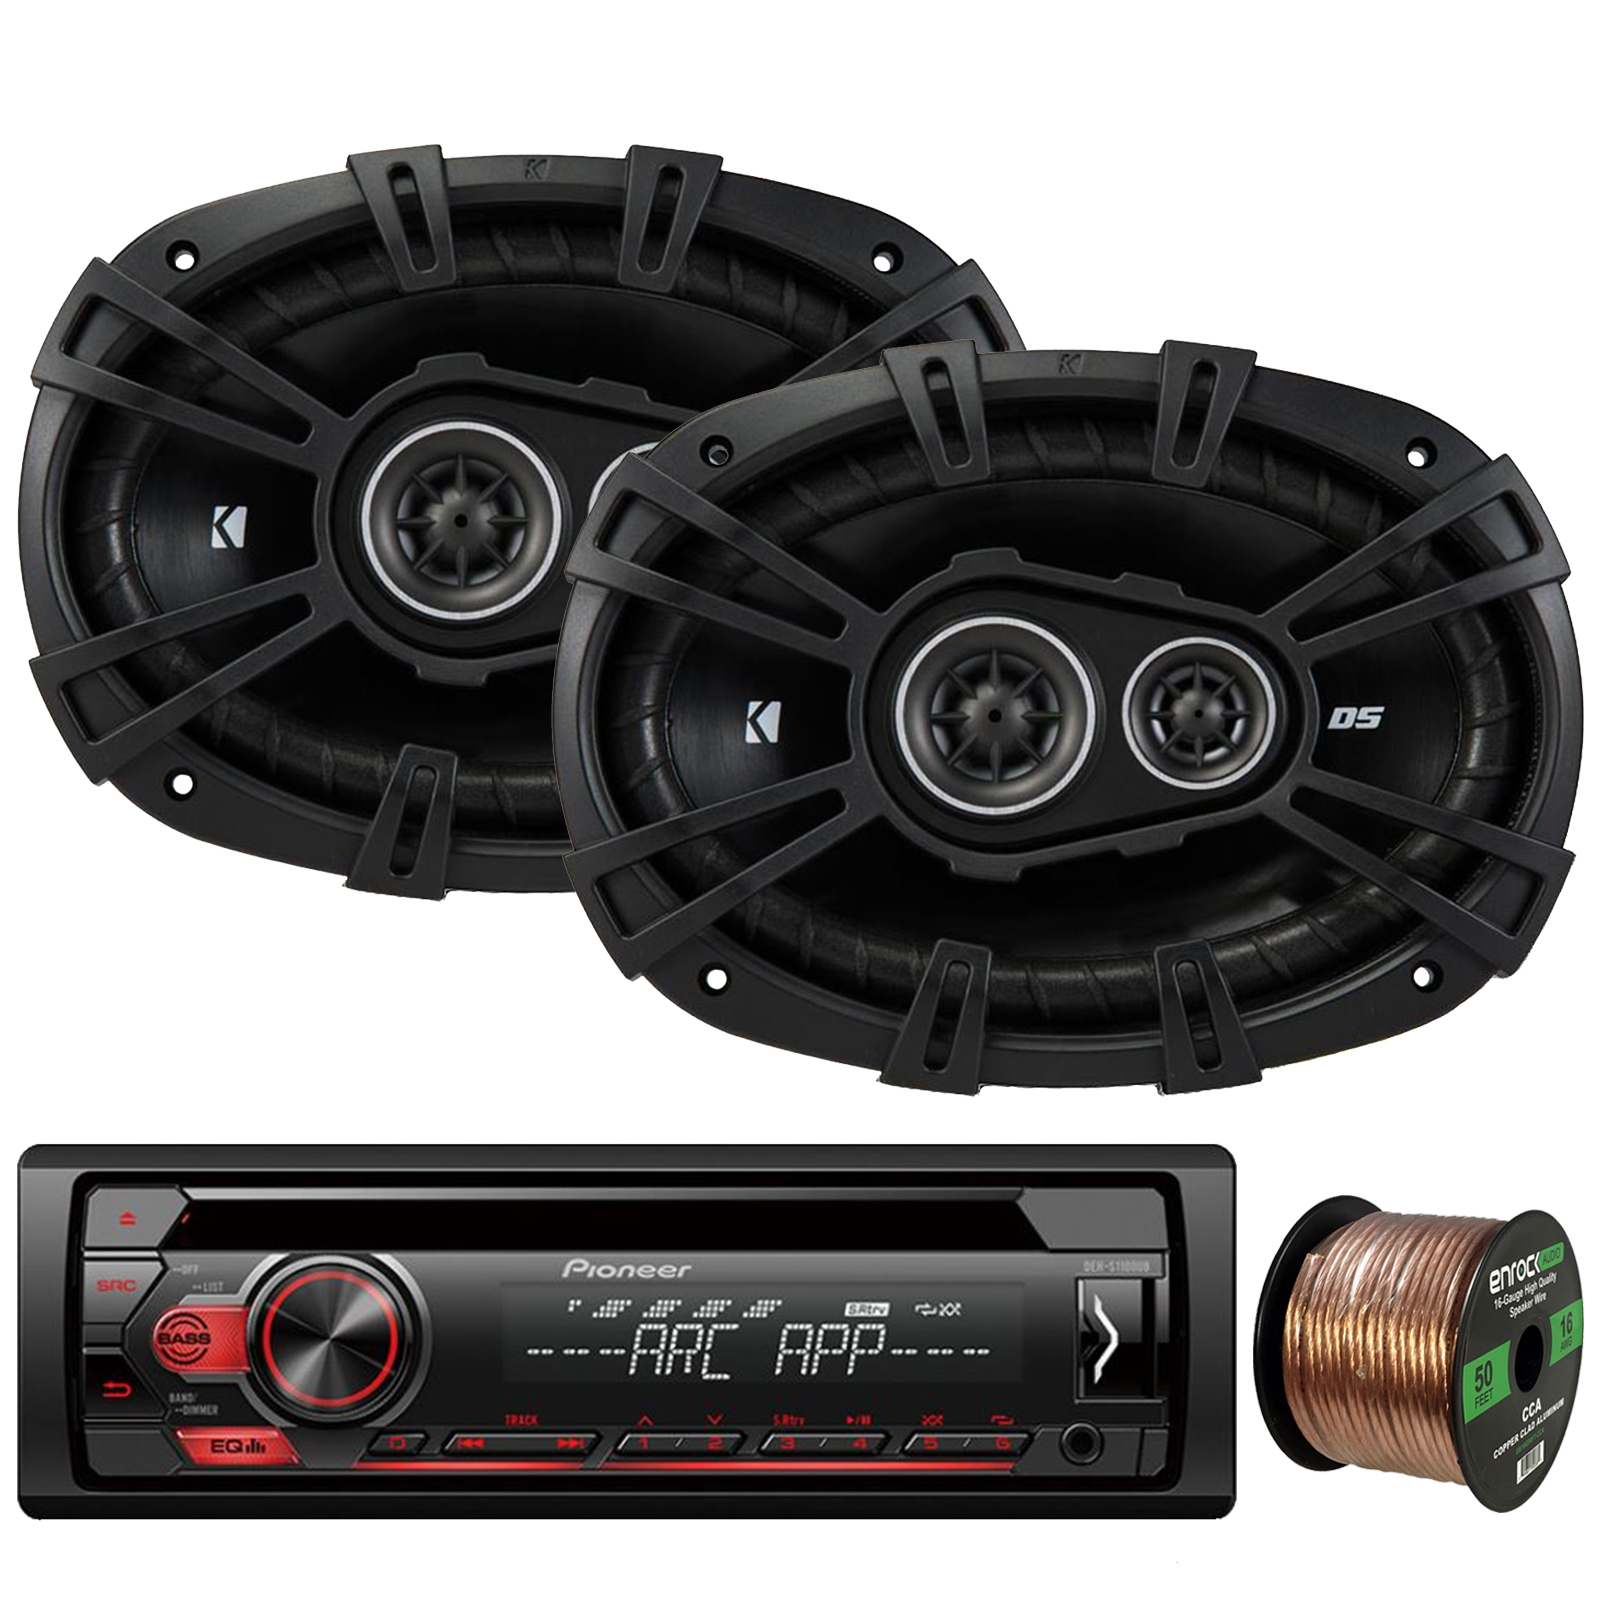 "Pioneer DEH-S1100UB Single-DIN CD Player AM/FM Car Stereo Receiver, 2 x Kicker 43DSC69304 DS-Series 6x9"" 360W 3-Way Car Audio Coaxial Speakers, 16-Gauge 50Ft. Speaker Wire"